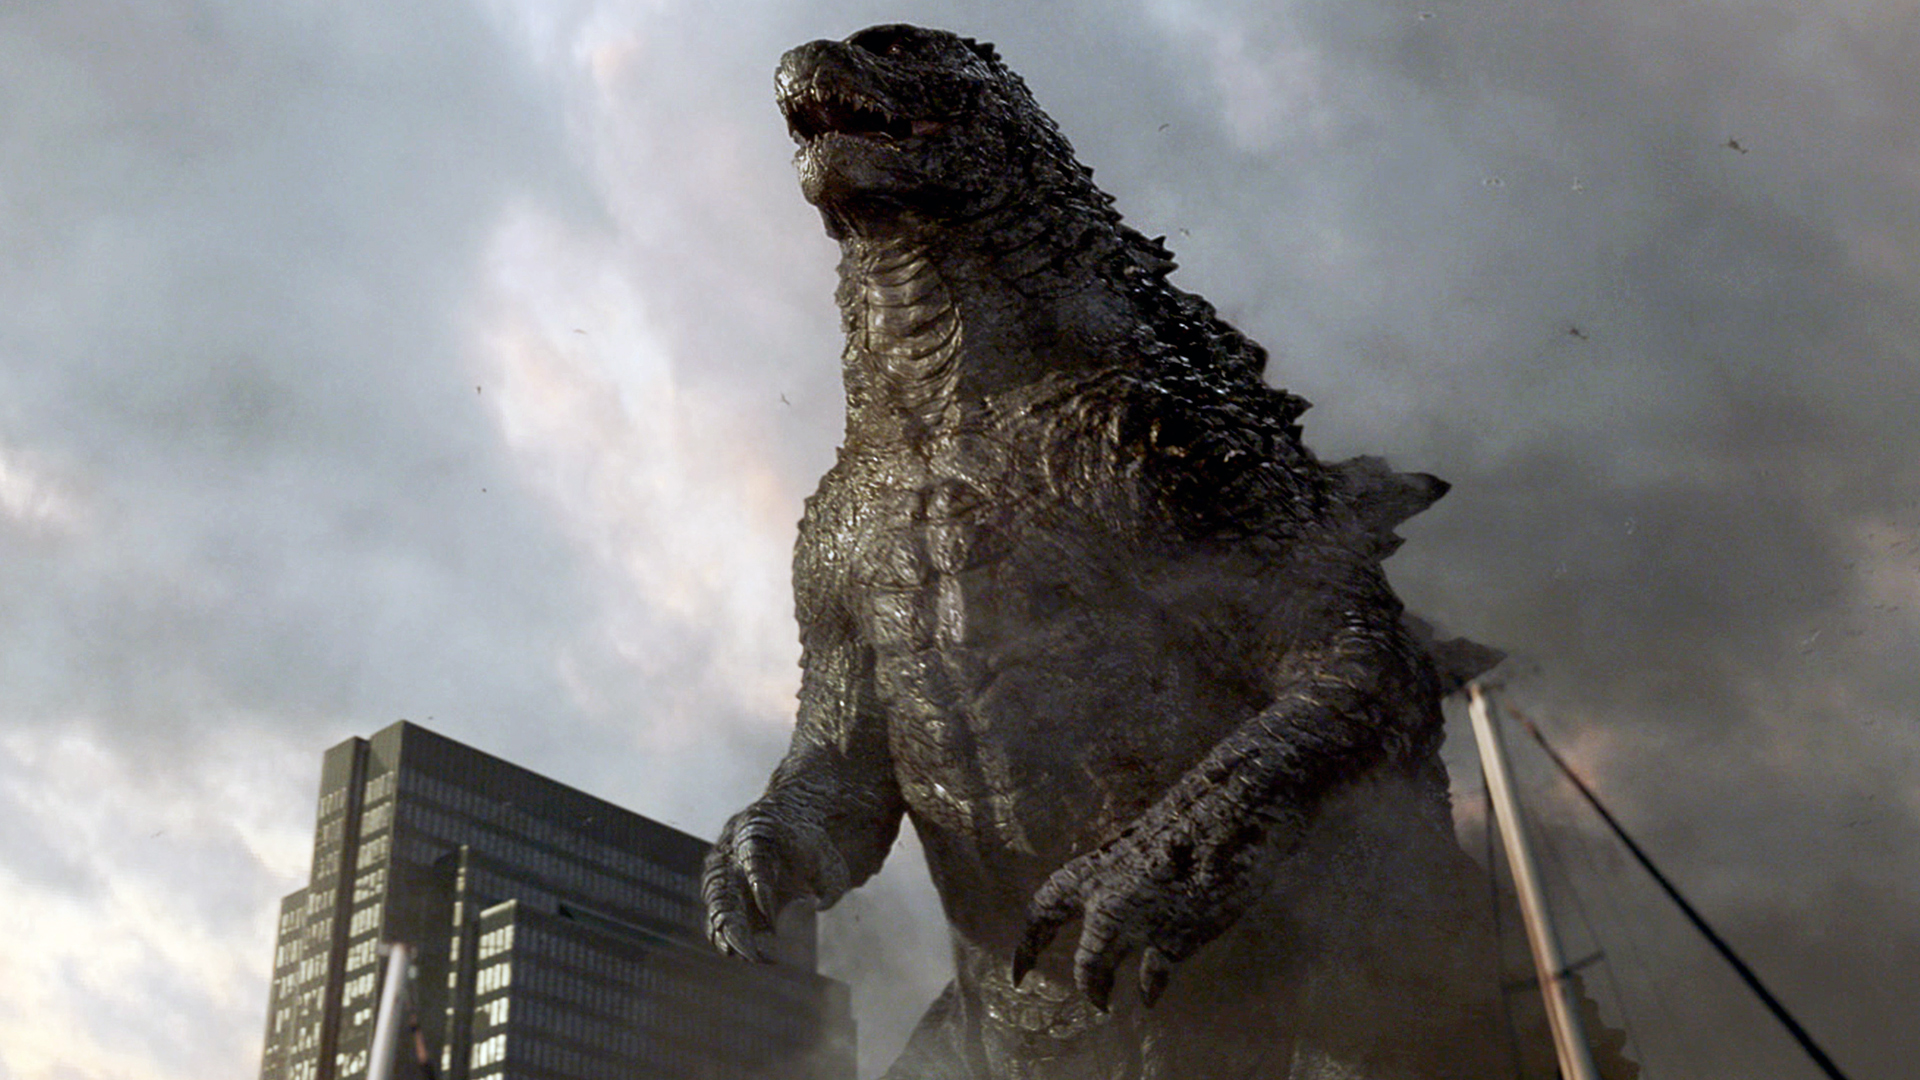 godzilla image 2014 movie hd 1920x1080 1080p wallpaper and compatible 1920x1080